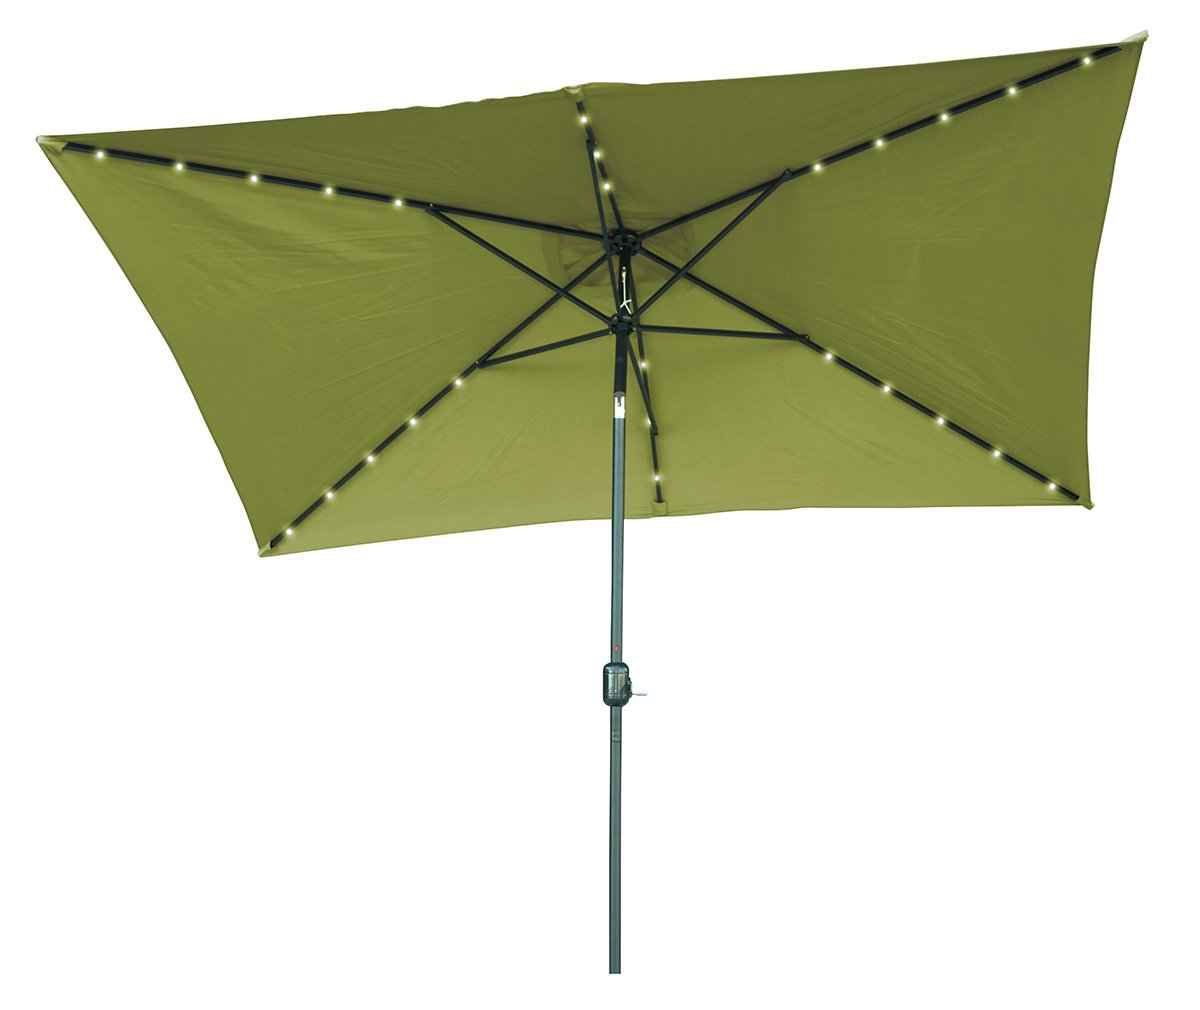 10' x 6.5' Light Green Rectangular Solar Powered LED Lighted Patio Umbrella with Gray Square Base - By Trademark Innovations by Trademark Innovations (Image #2)